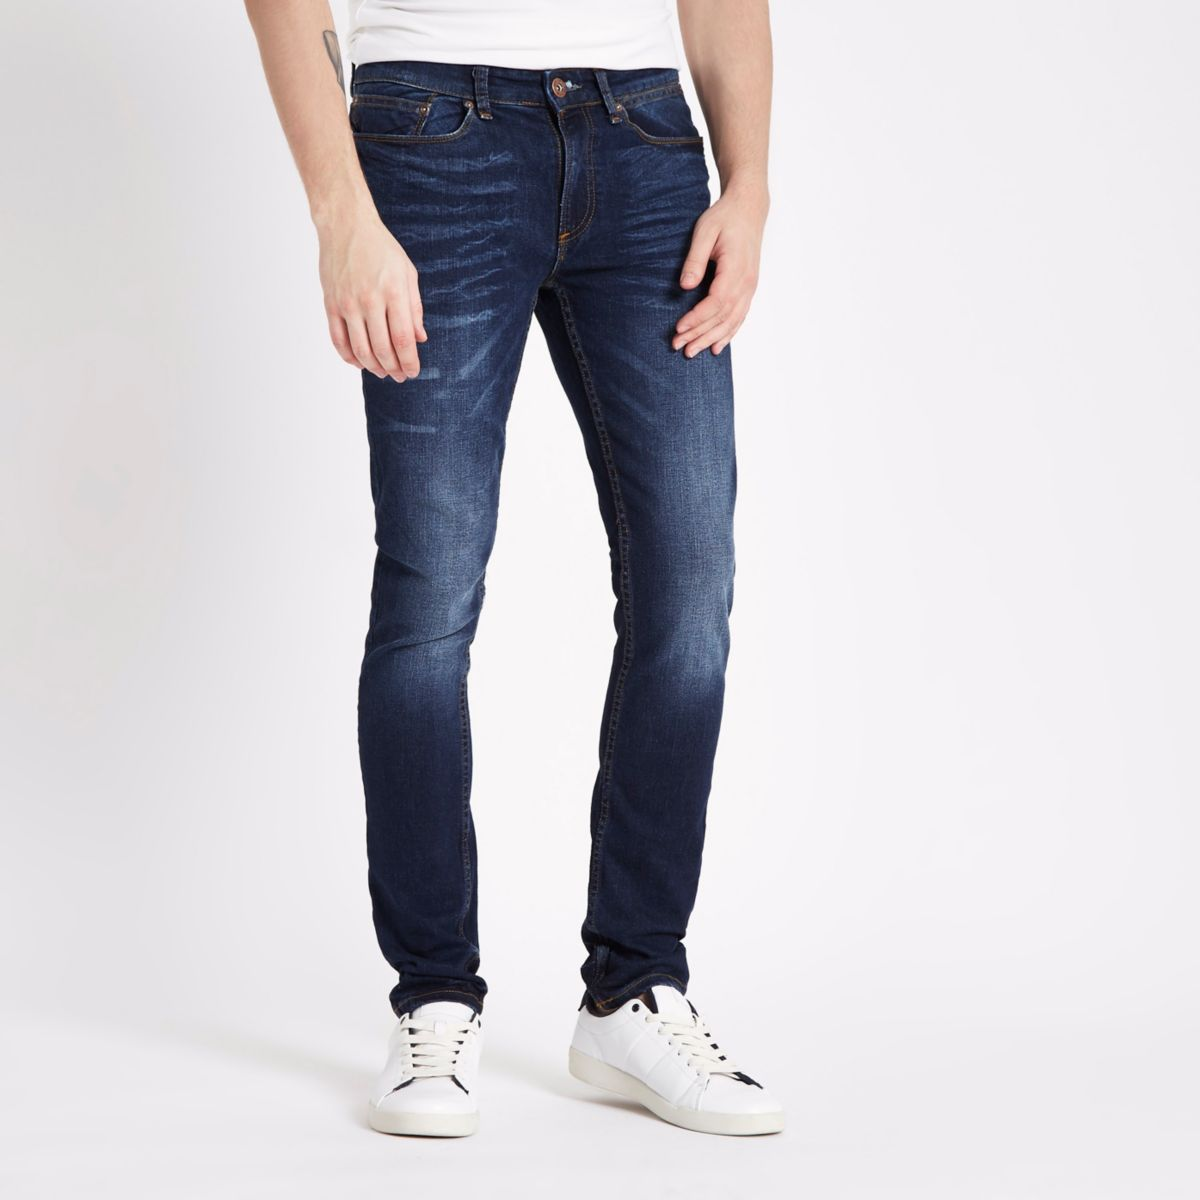 Since , Wrangler's jeans for men have been the American standard for comfort and durability. Browse men's jeans by fit, rise, size, price and more.